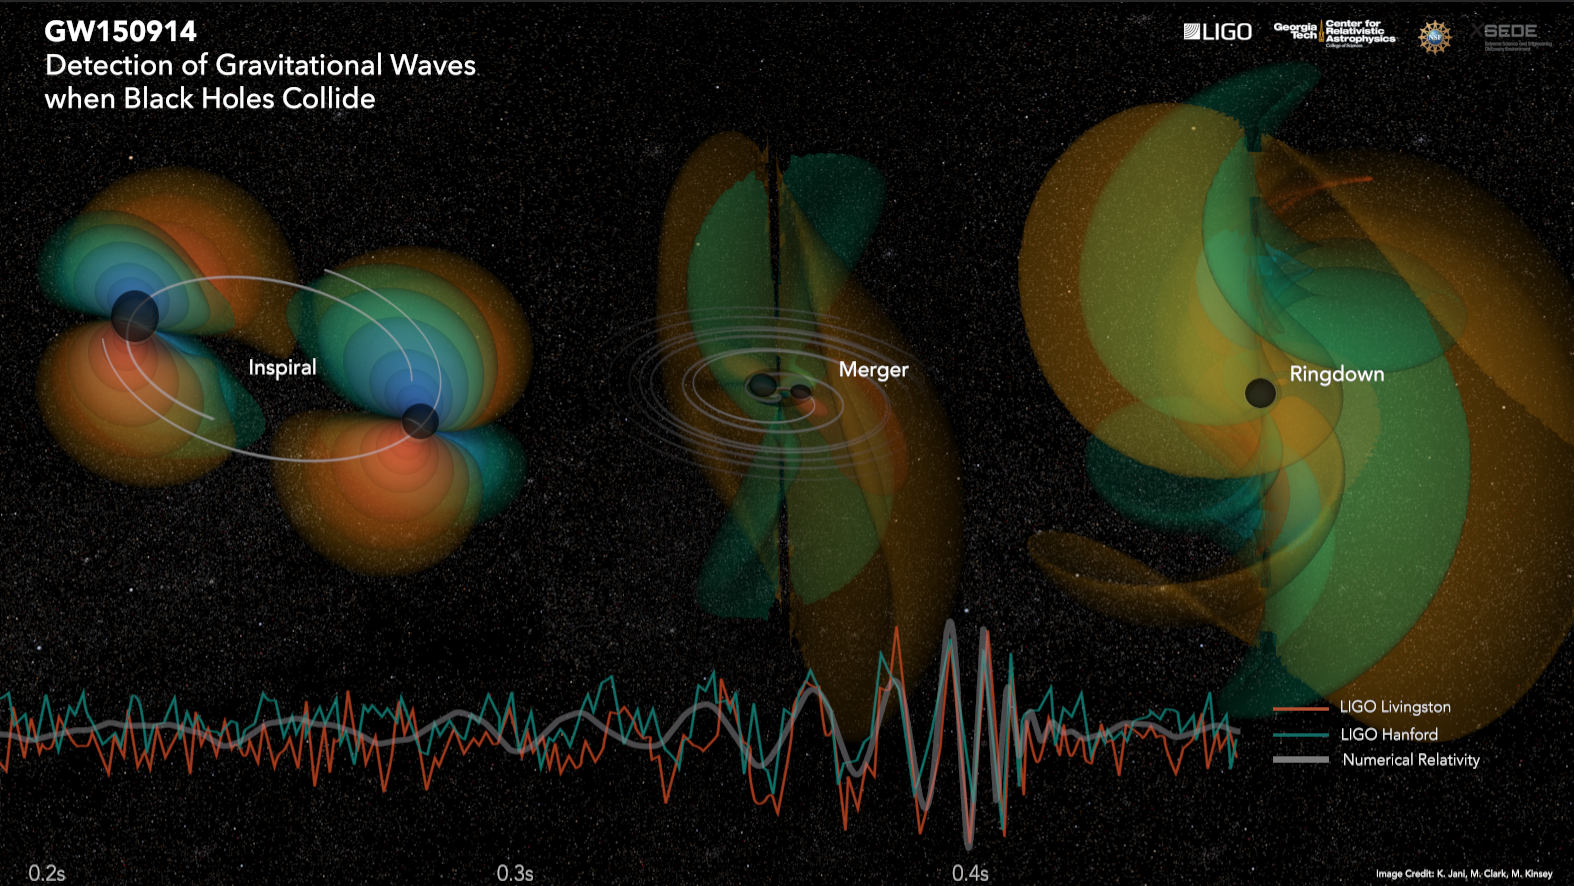 """The three stages of black hole collision as observed in supercomputer simulation of Einstein Equations. C V Vishveshwara from the Raman Research Institute, along with S. Chandrasekhar (Nobel Prize, 1983) did the historic work in understanding of the """"ringdown"""" stage after collision of black holes (Simulation and Image Credit: M. Kinsey,   M. Clark, K. Jani, Center For Relativistic Astrophysics  , Georgia Institute of Technology)"""